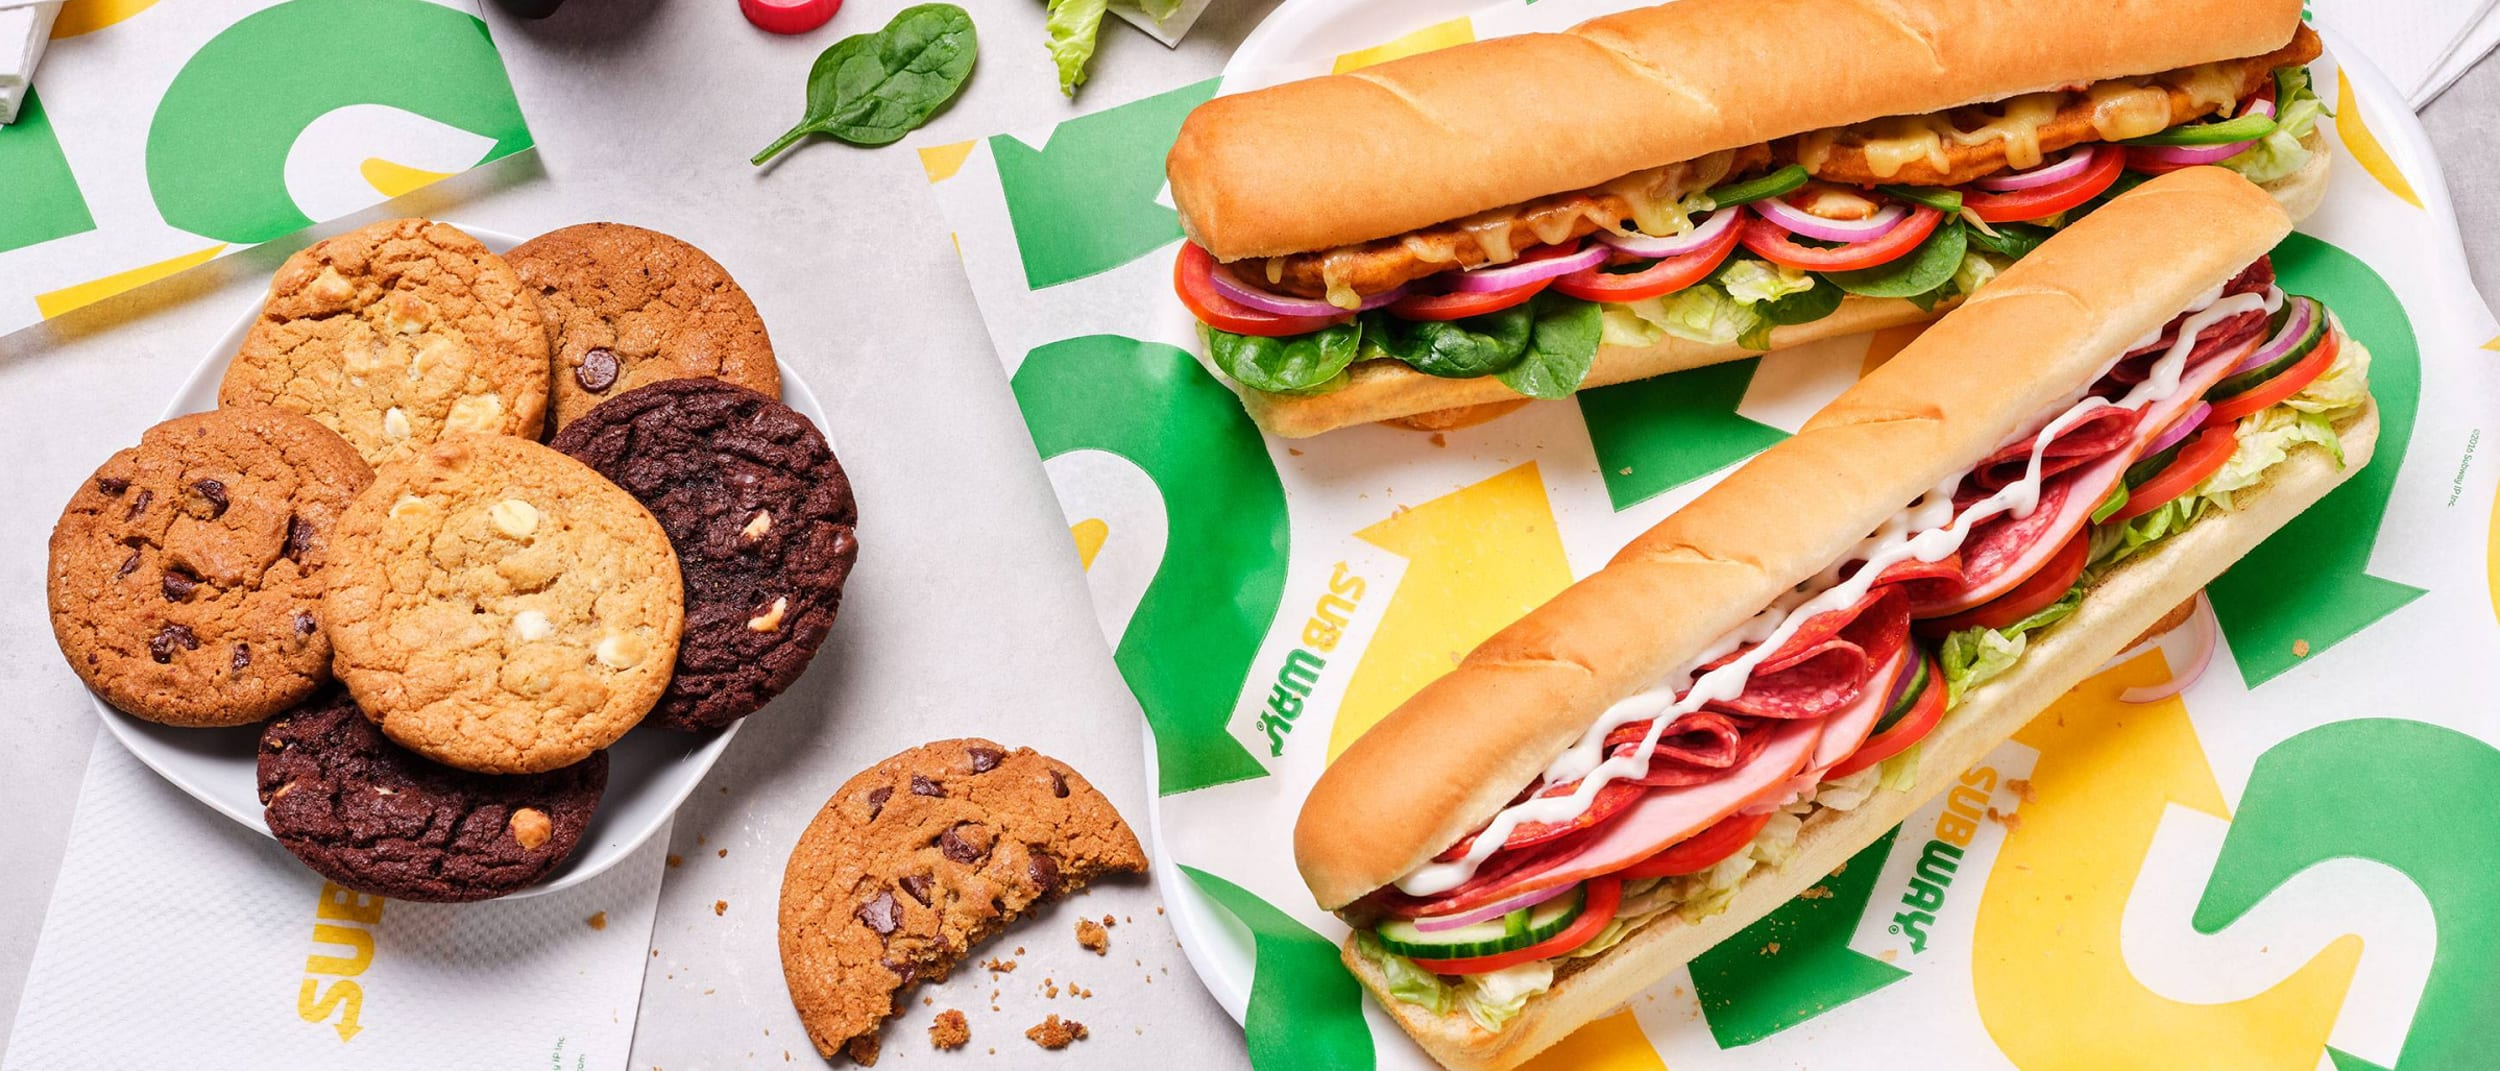 Westfield Plus Offer: Subway - 6 free cookies when you spend $30